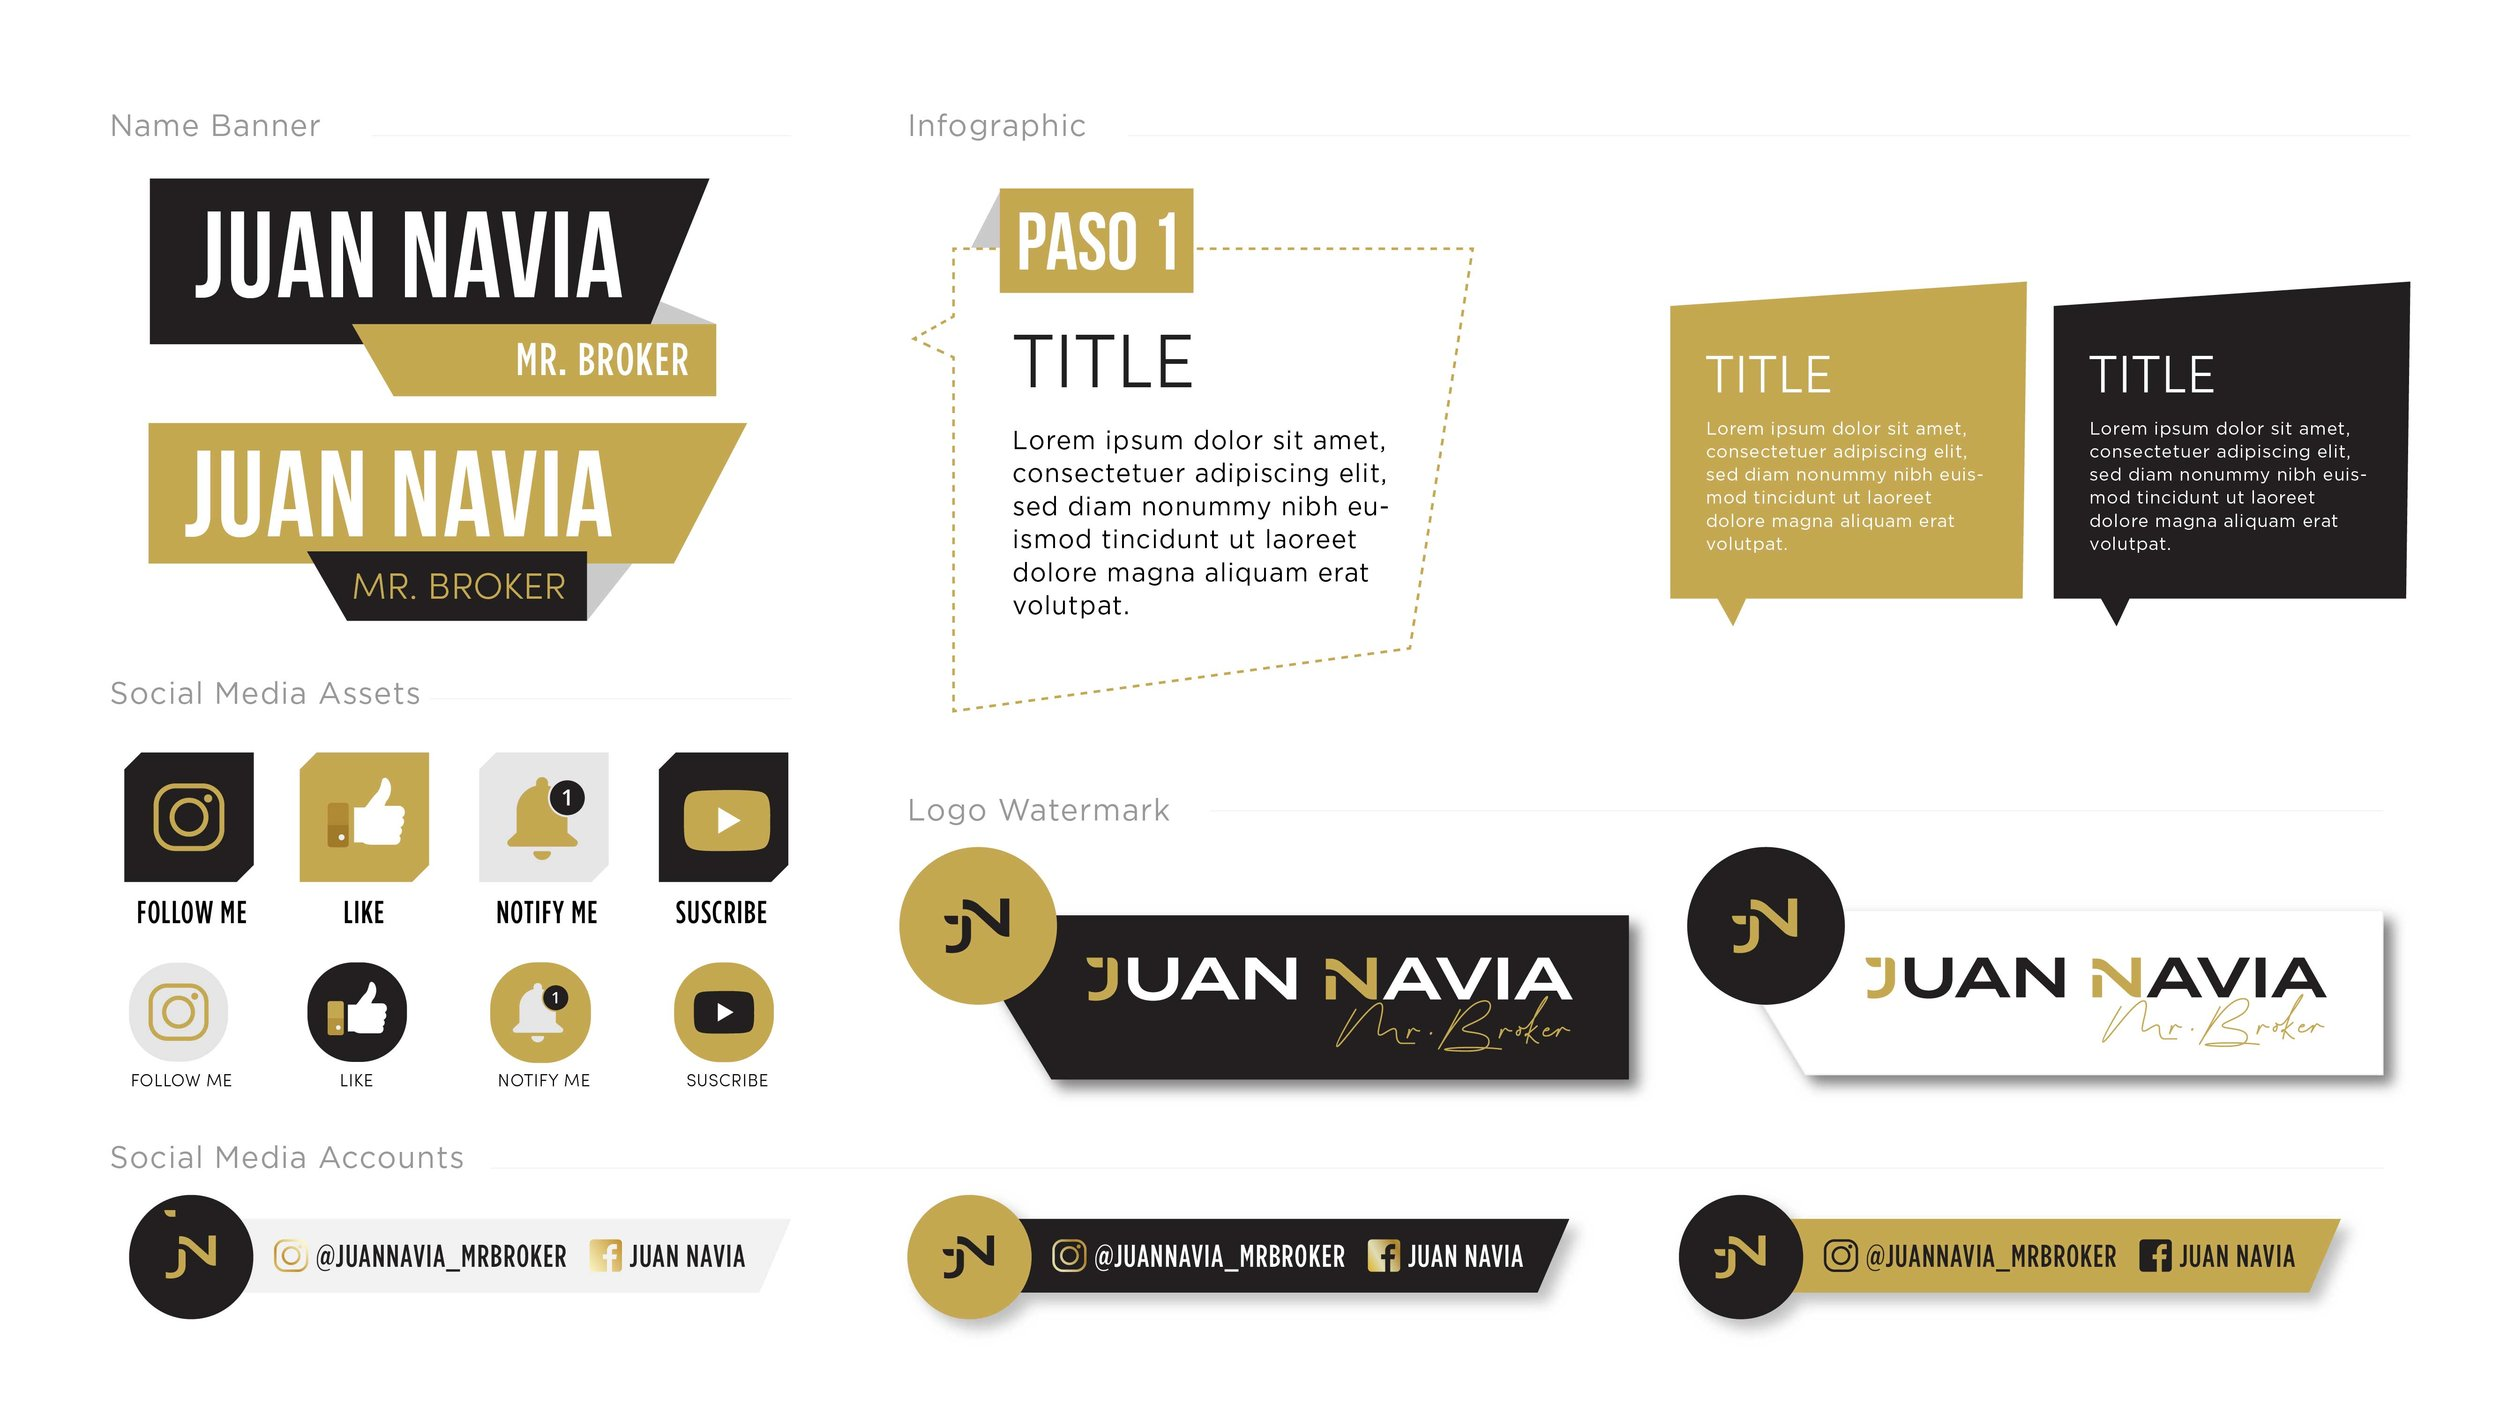 Juan Navia TV SamplesYT Design Assets.jpg